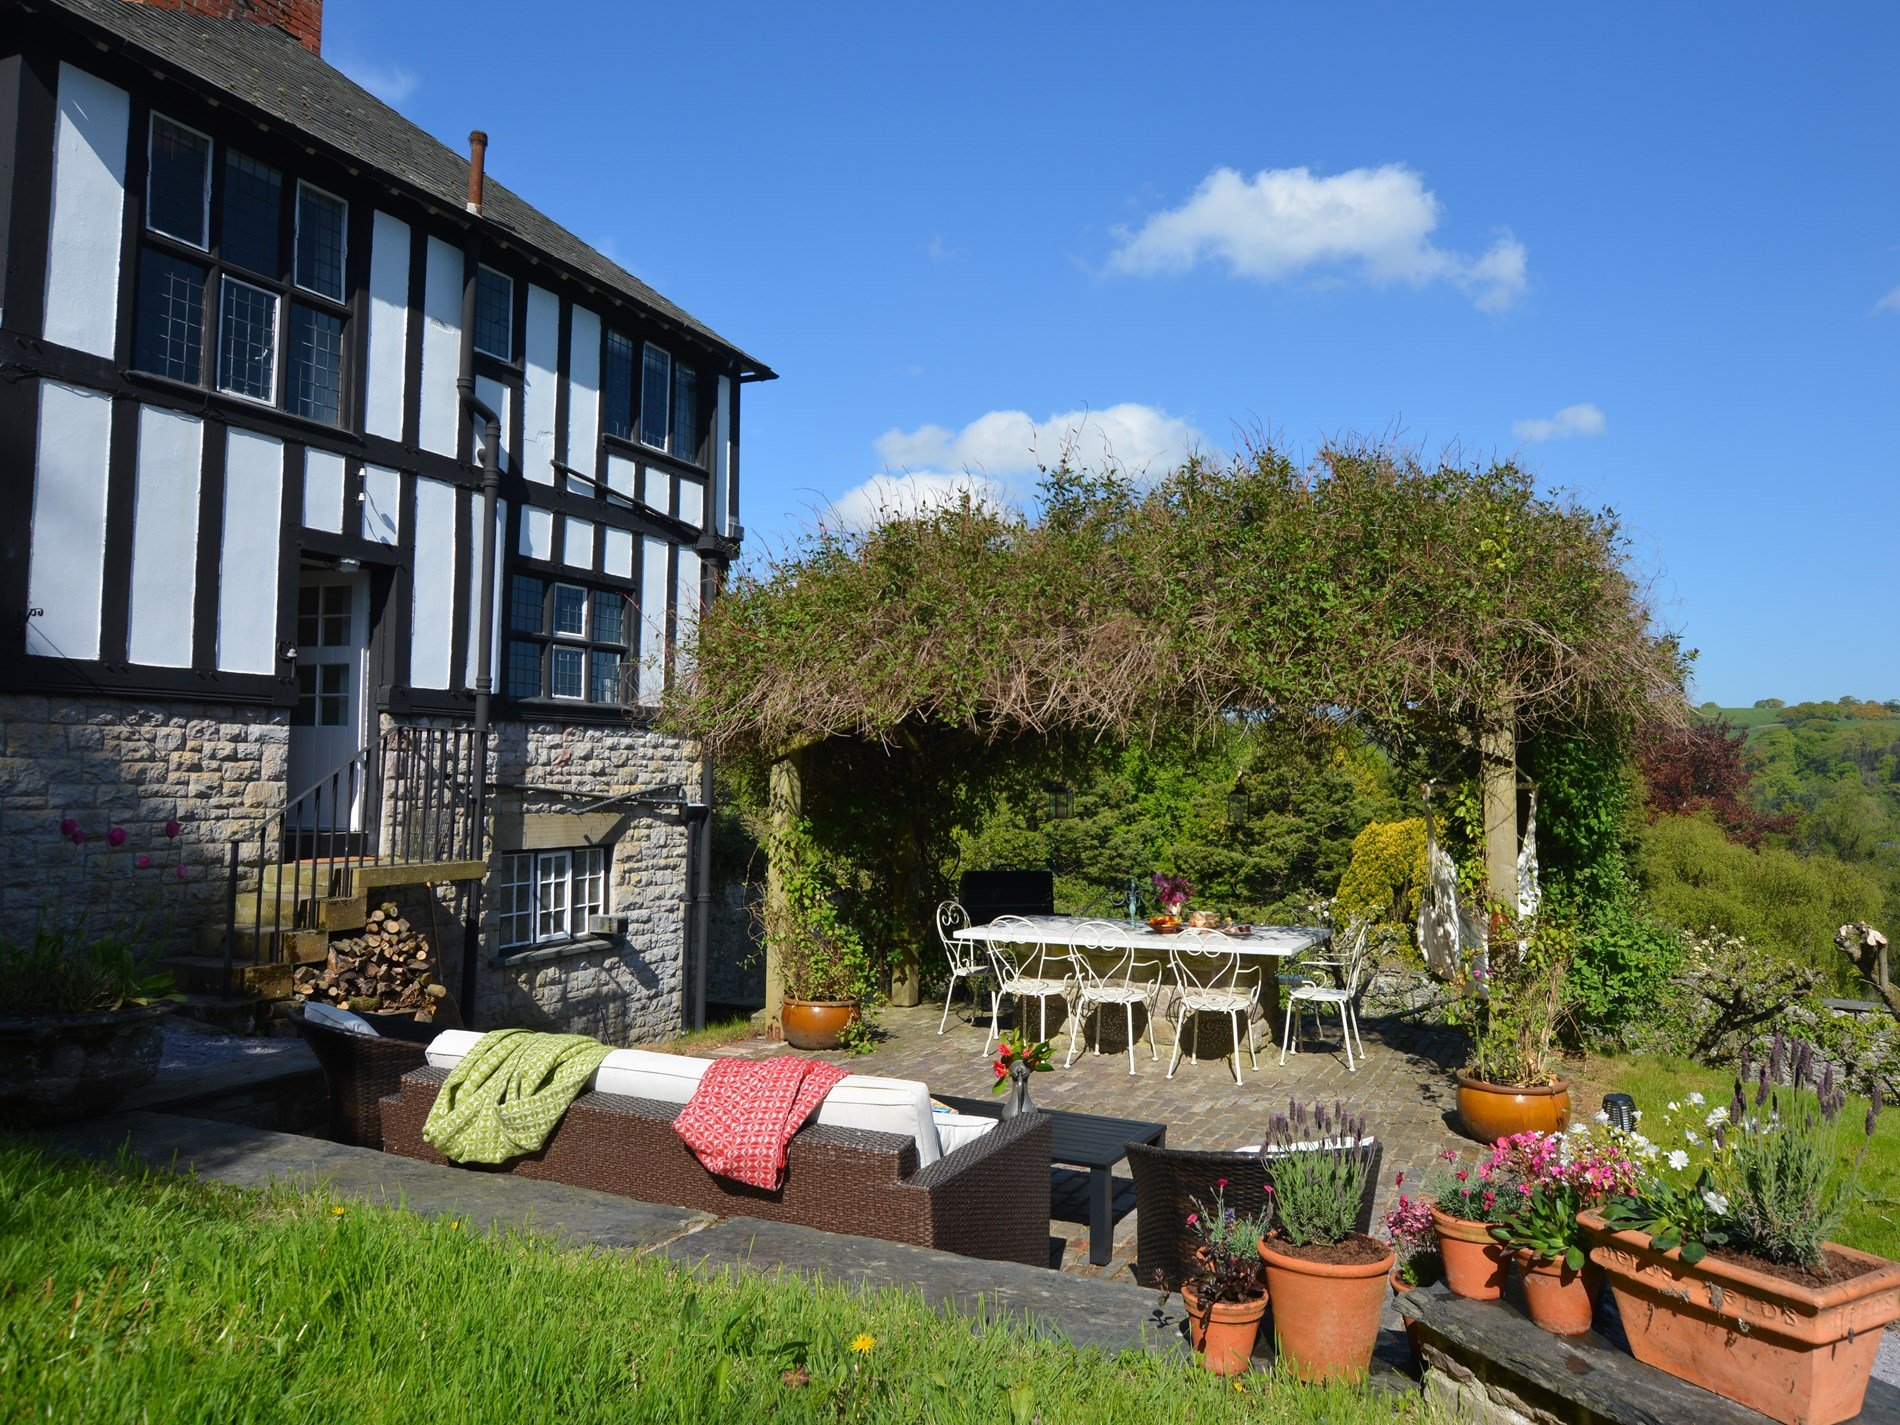 4 Bedroom Cottage in Colwyn Bay, Snowdonia, North Wales and Cheshire